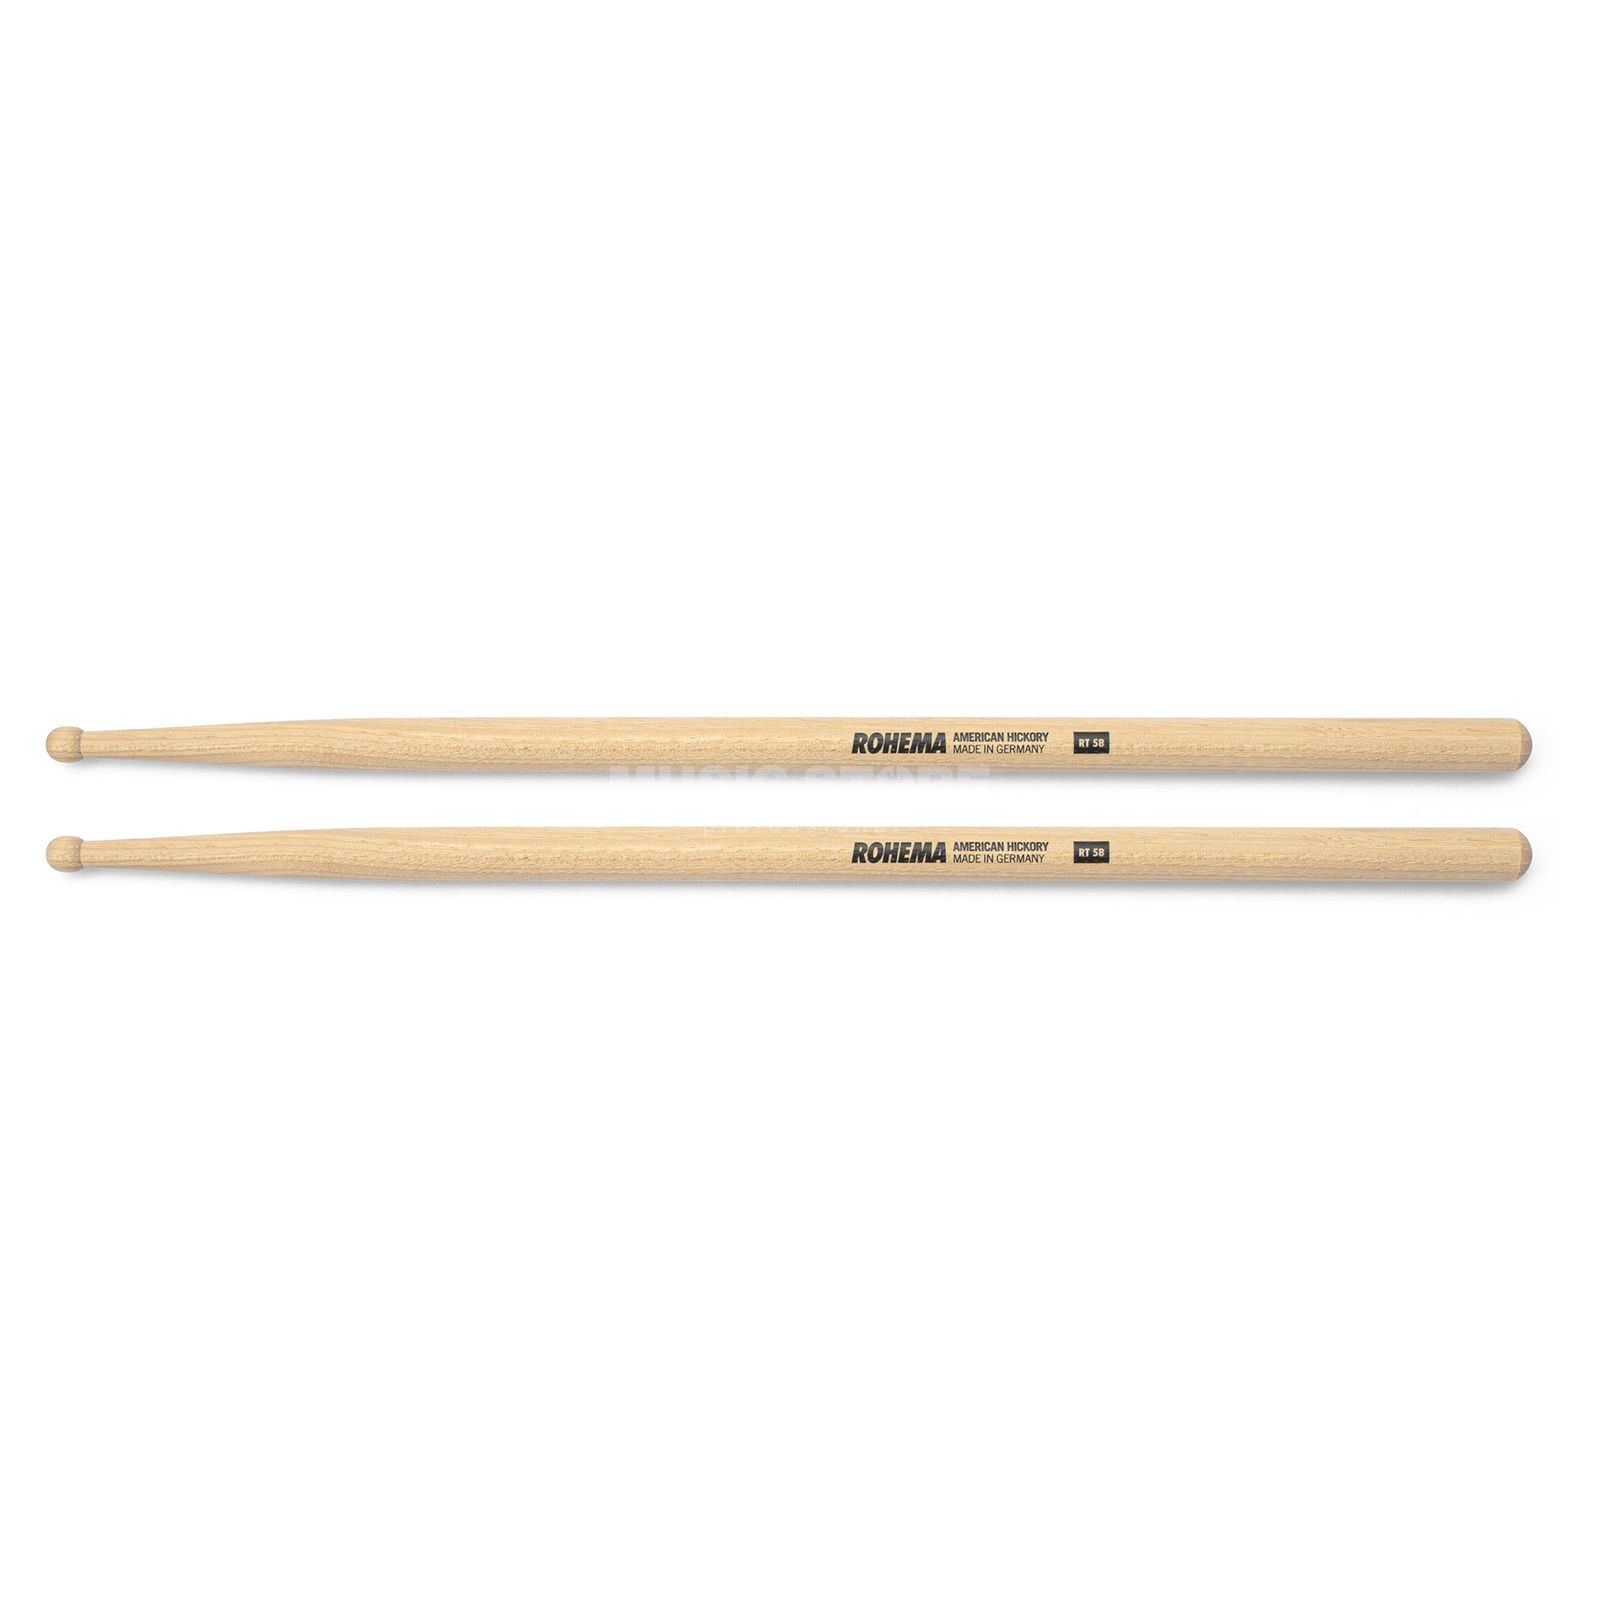 Rohema Round Tip Sticks RT 5B, Wood Tip Produktbild